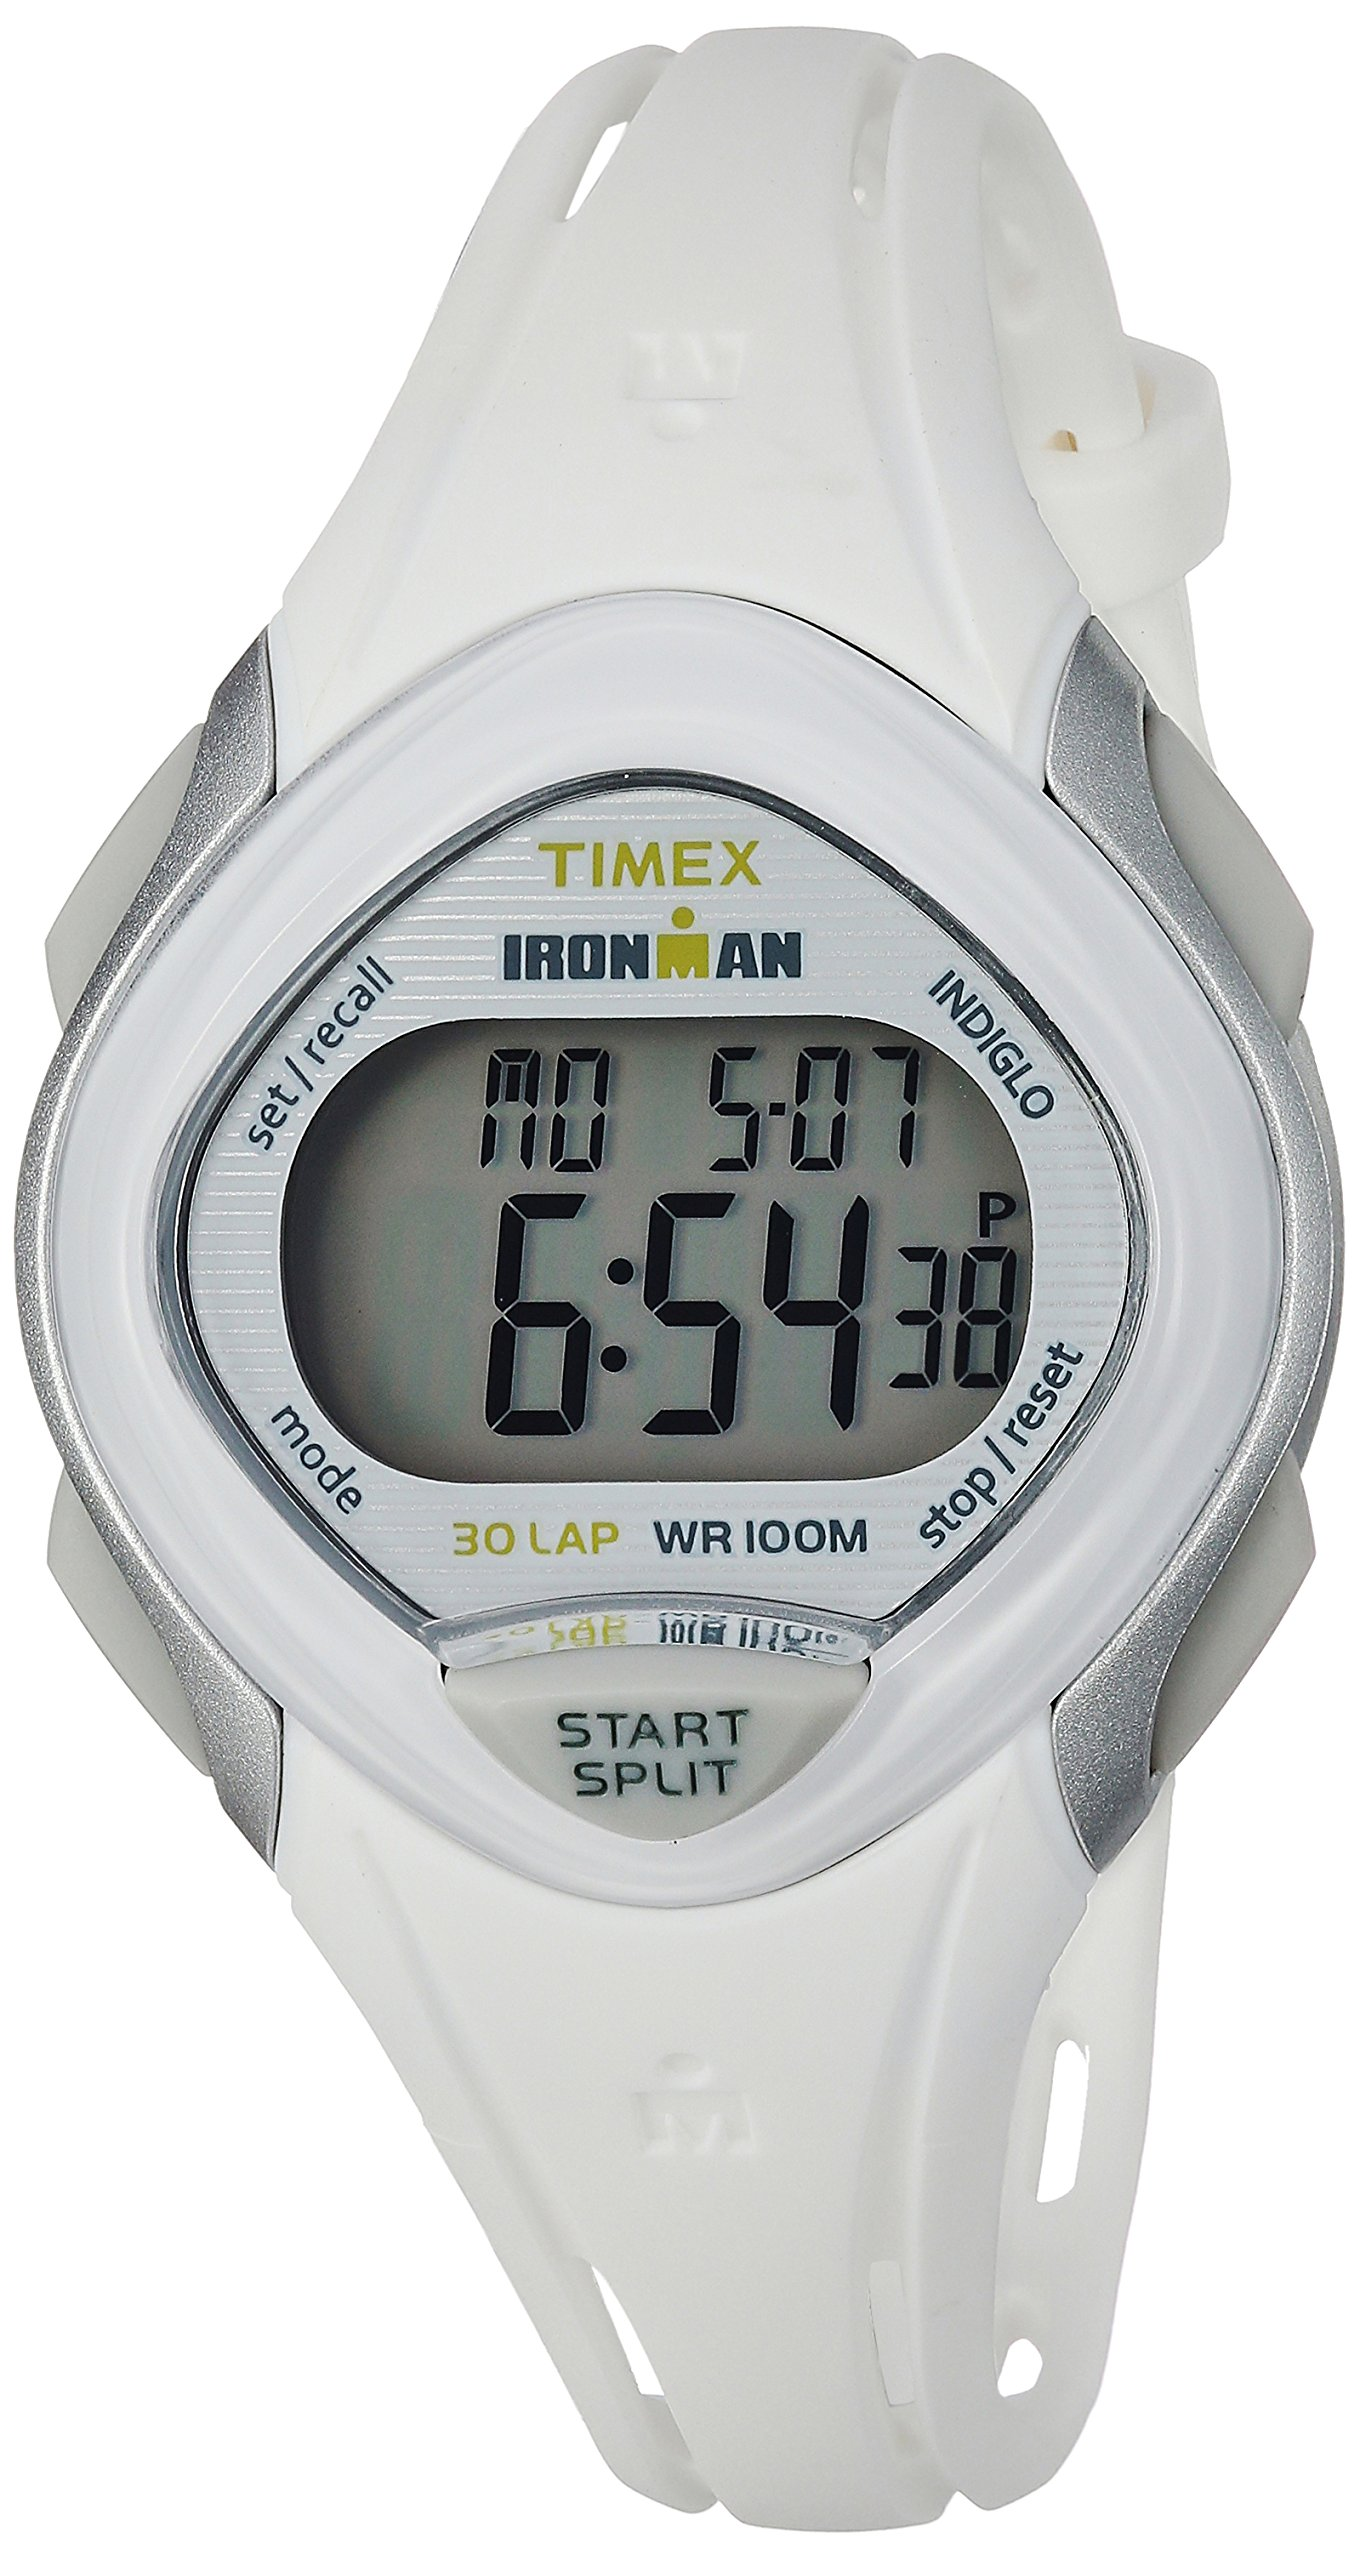 Timex Women's TW5M12400 Ironman Sleek 30 White Resin Strap Watch by Timex (Image #1)